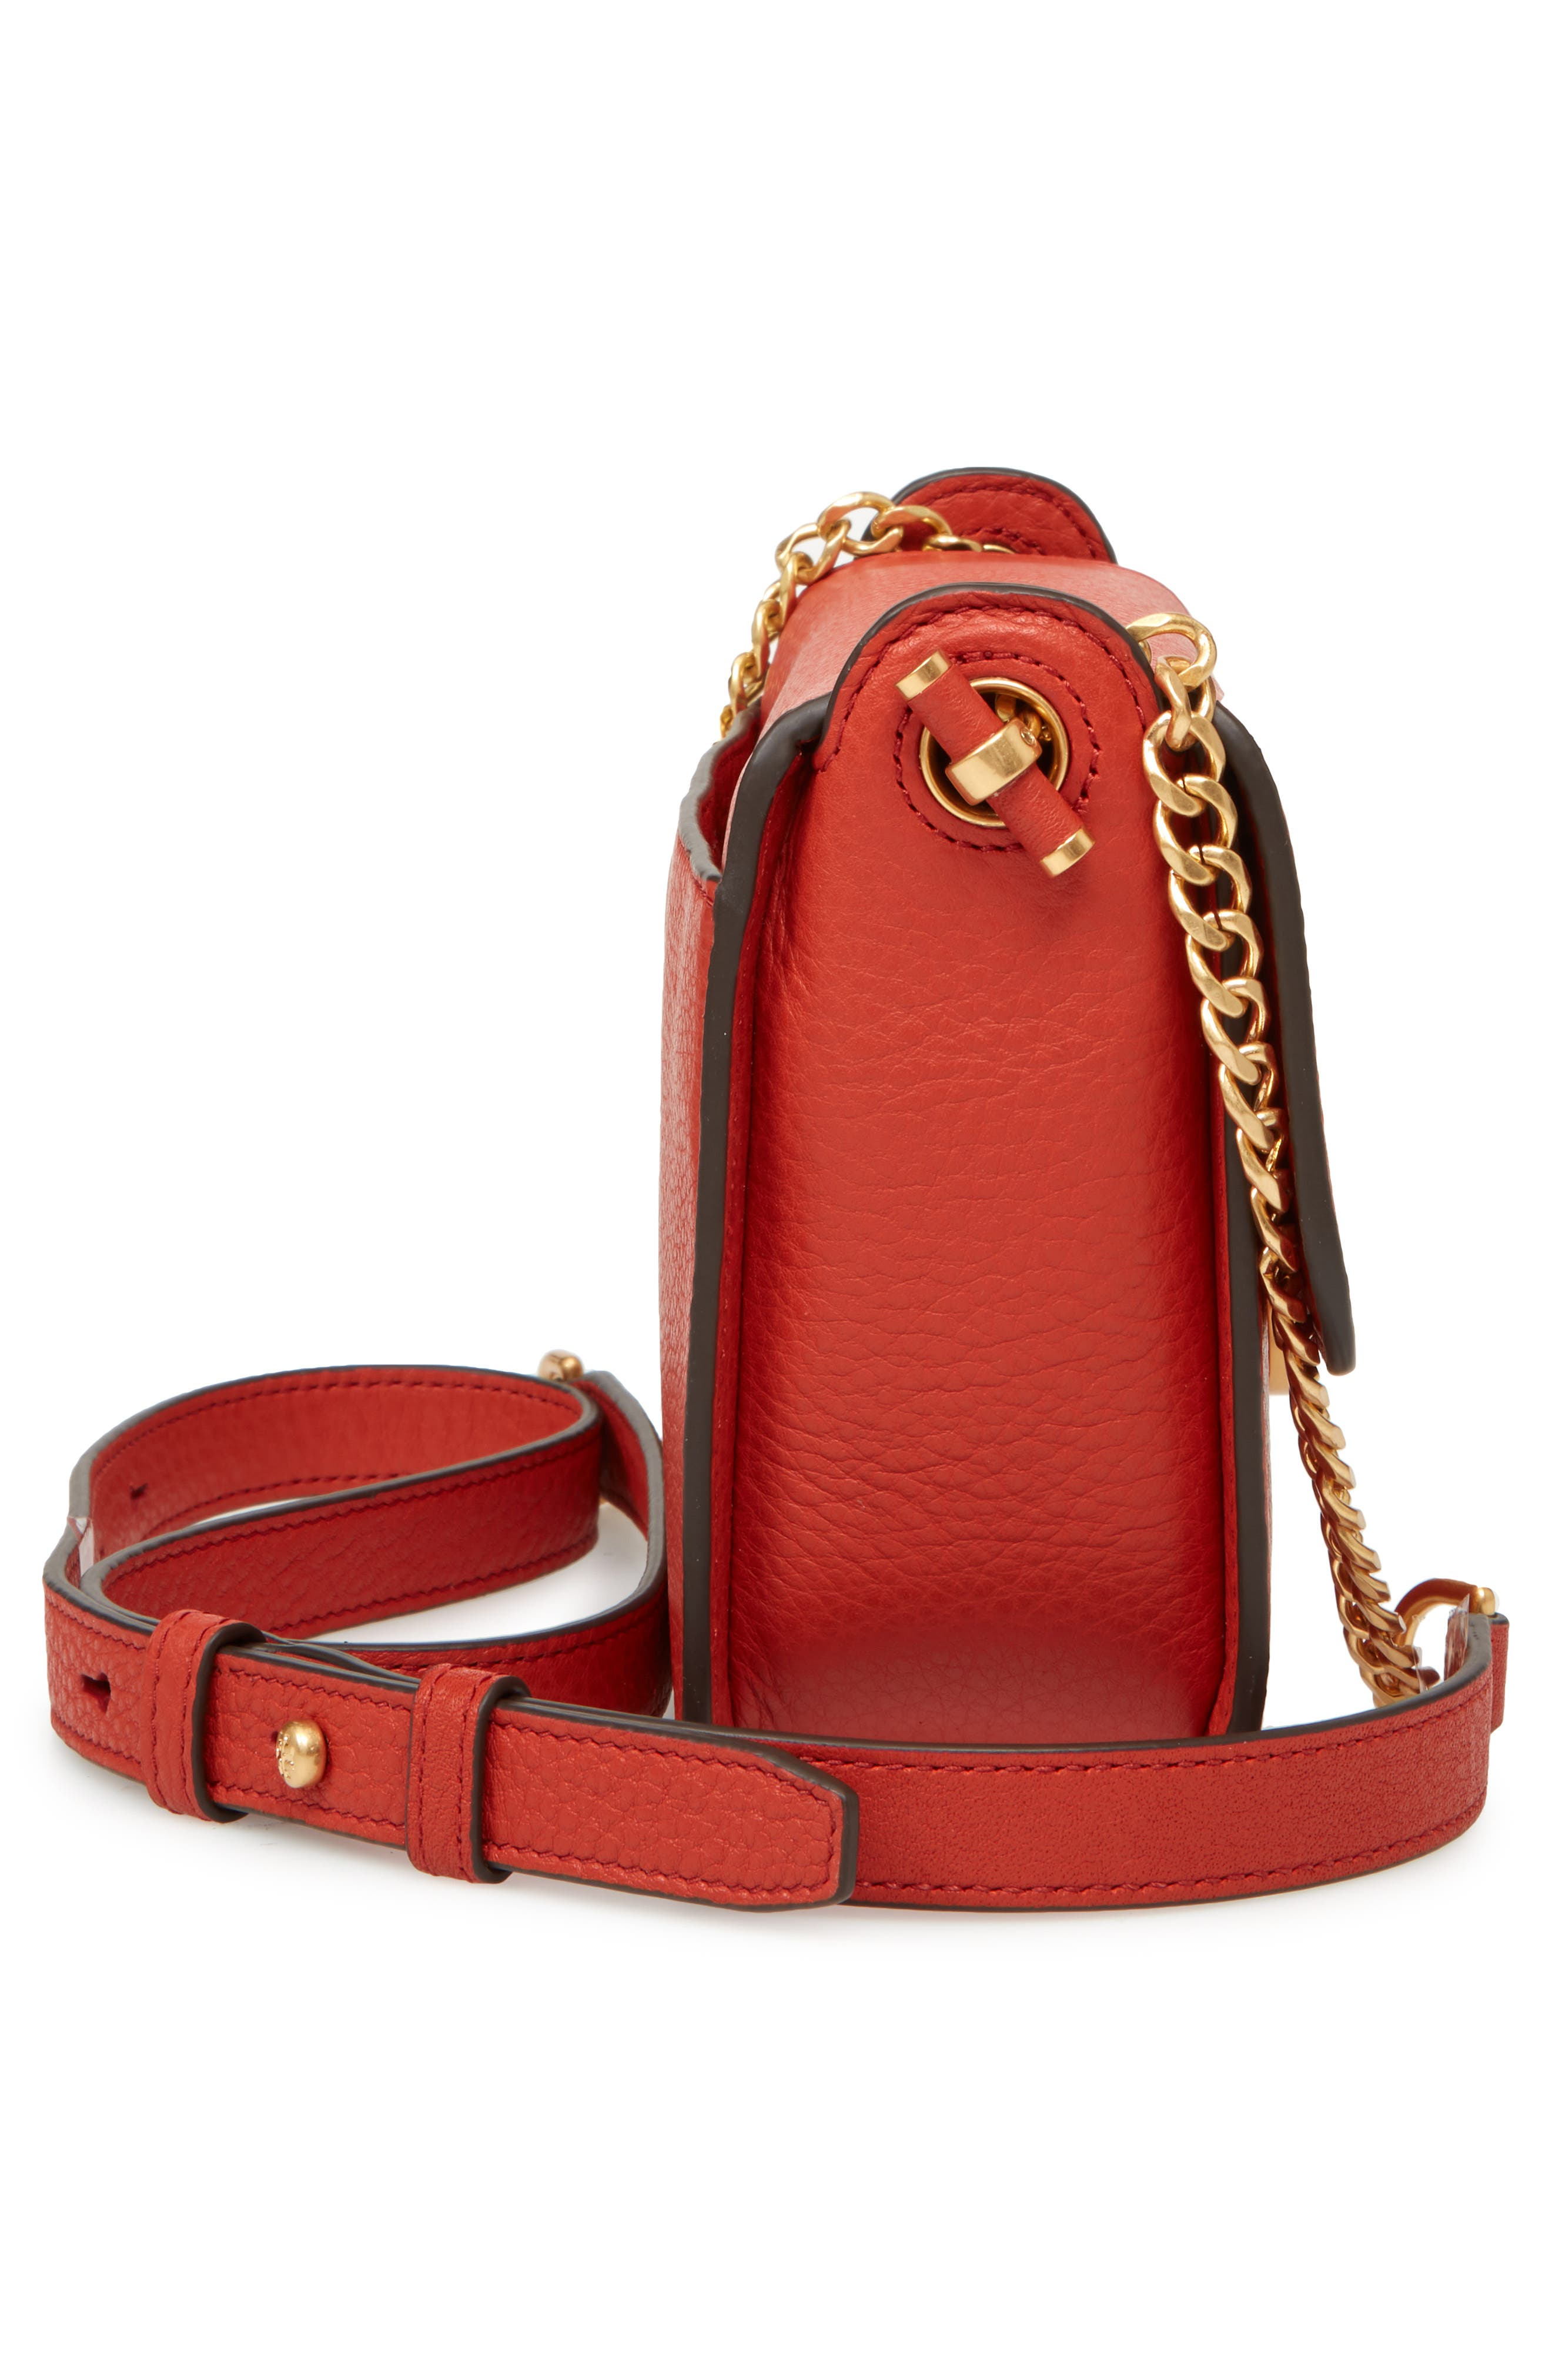 Chelsea Leather Crossbody Bag,                             Alternate thumbnail 4, color,                             Kola